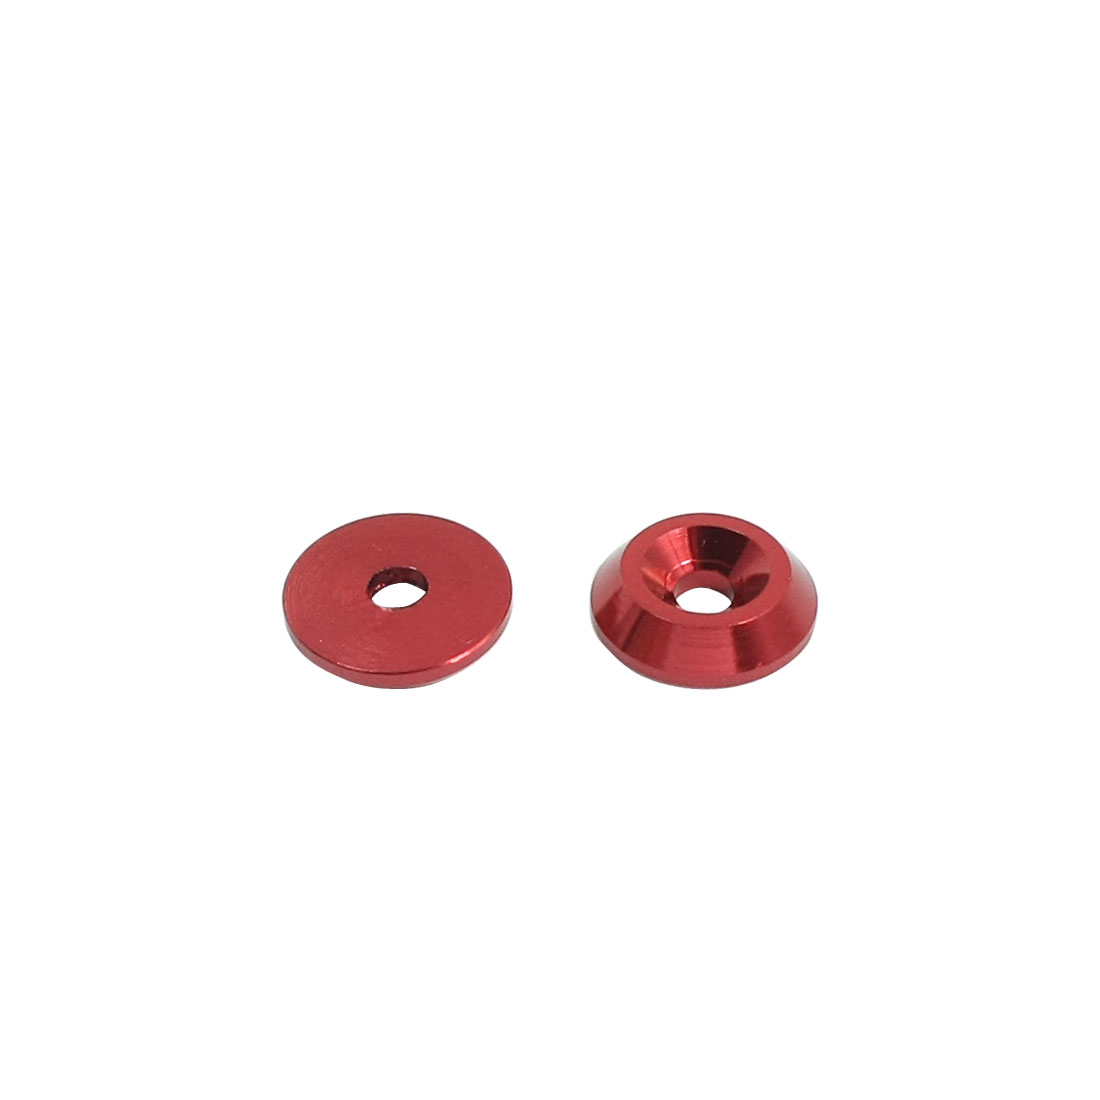 2 Pcs 12mm Outer Dia Red Aluminium Alloy Washer Spacer for 3mm Shaft RC Model Toy